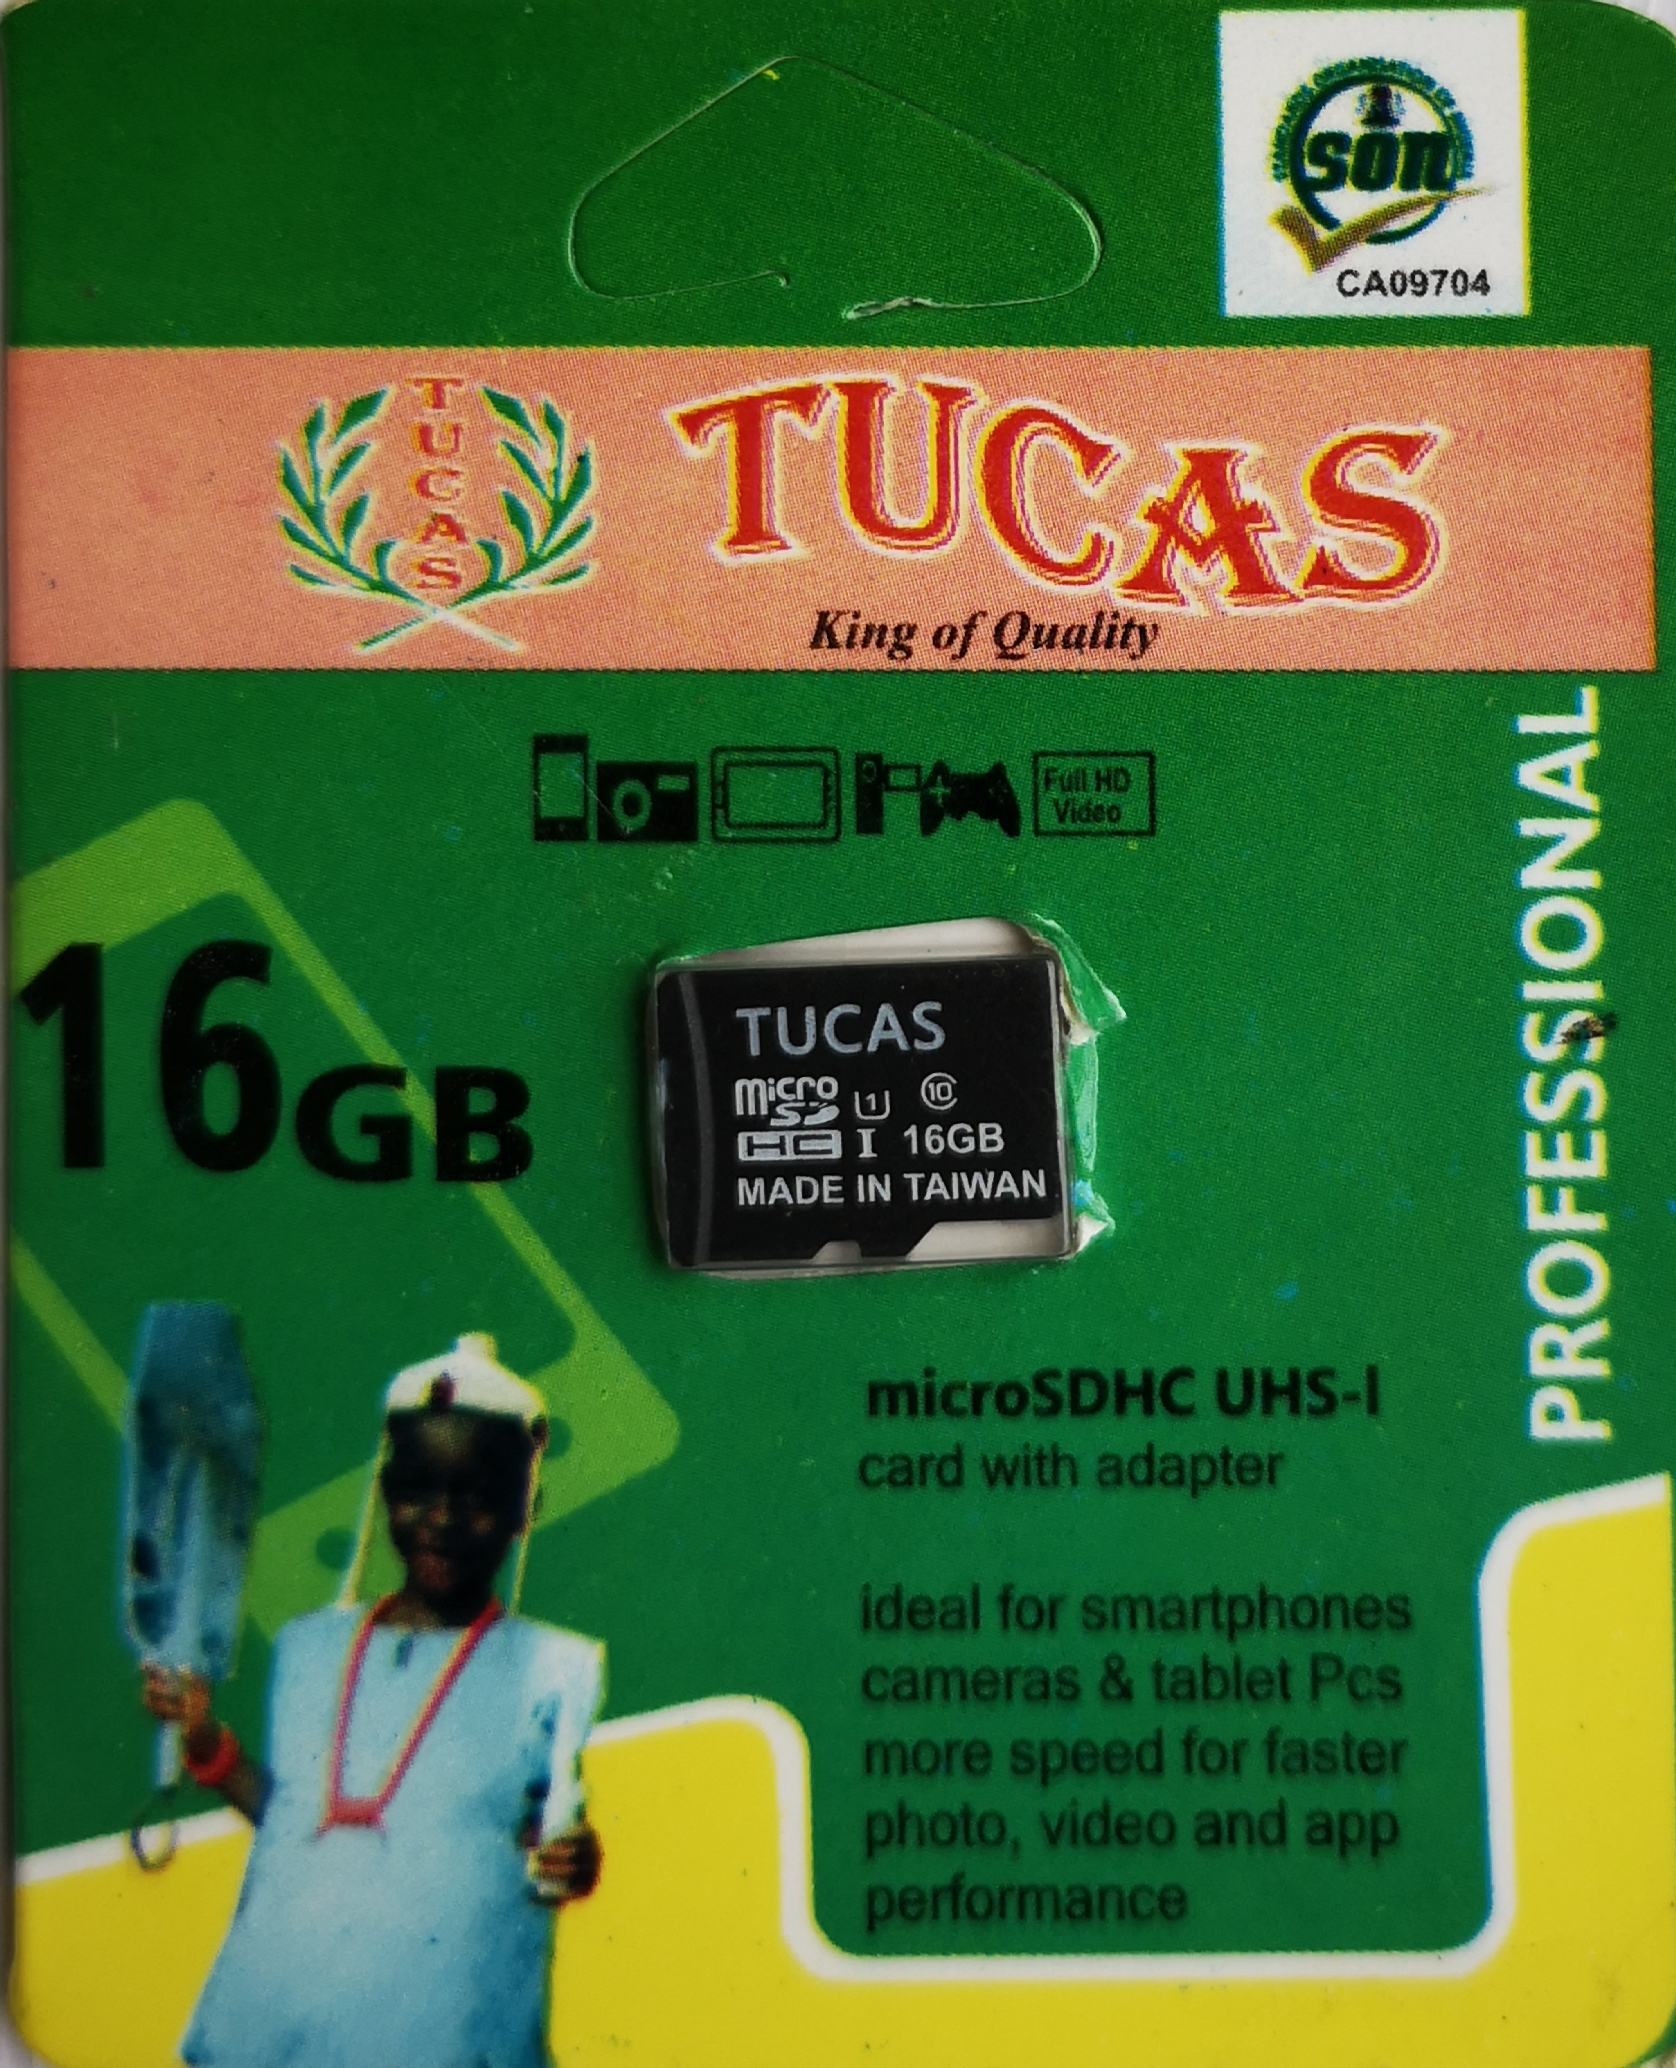 Tucas 16gb memory card mini pack